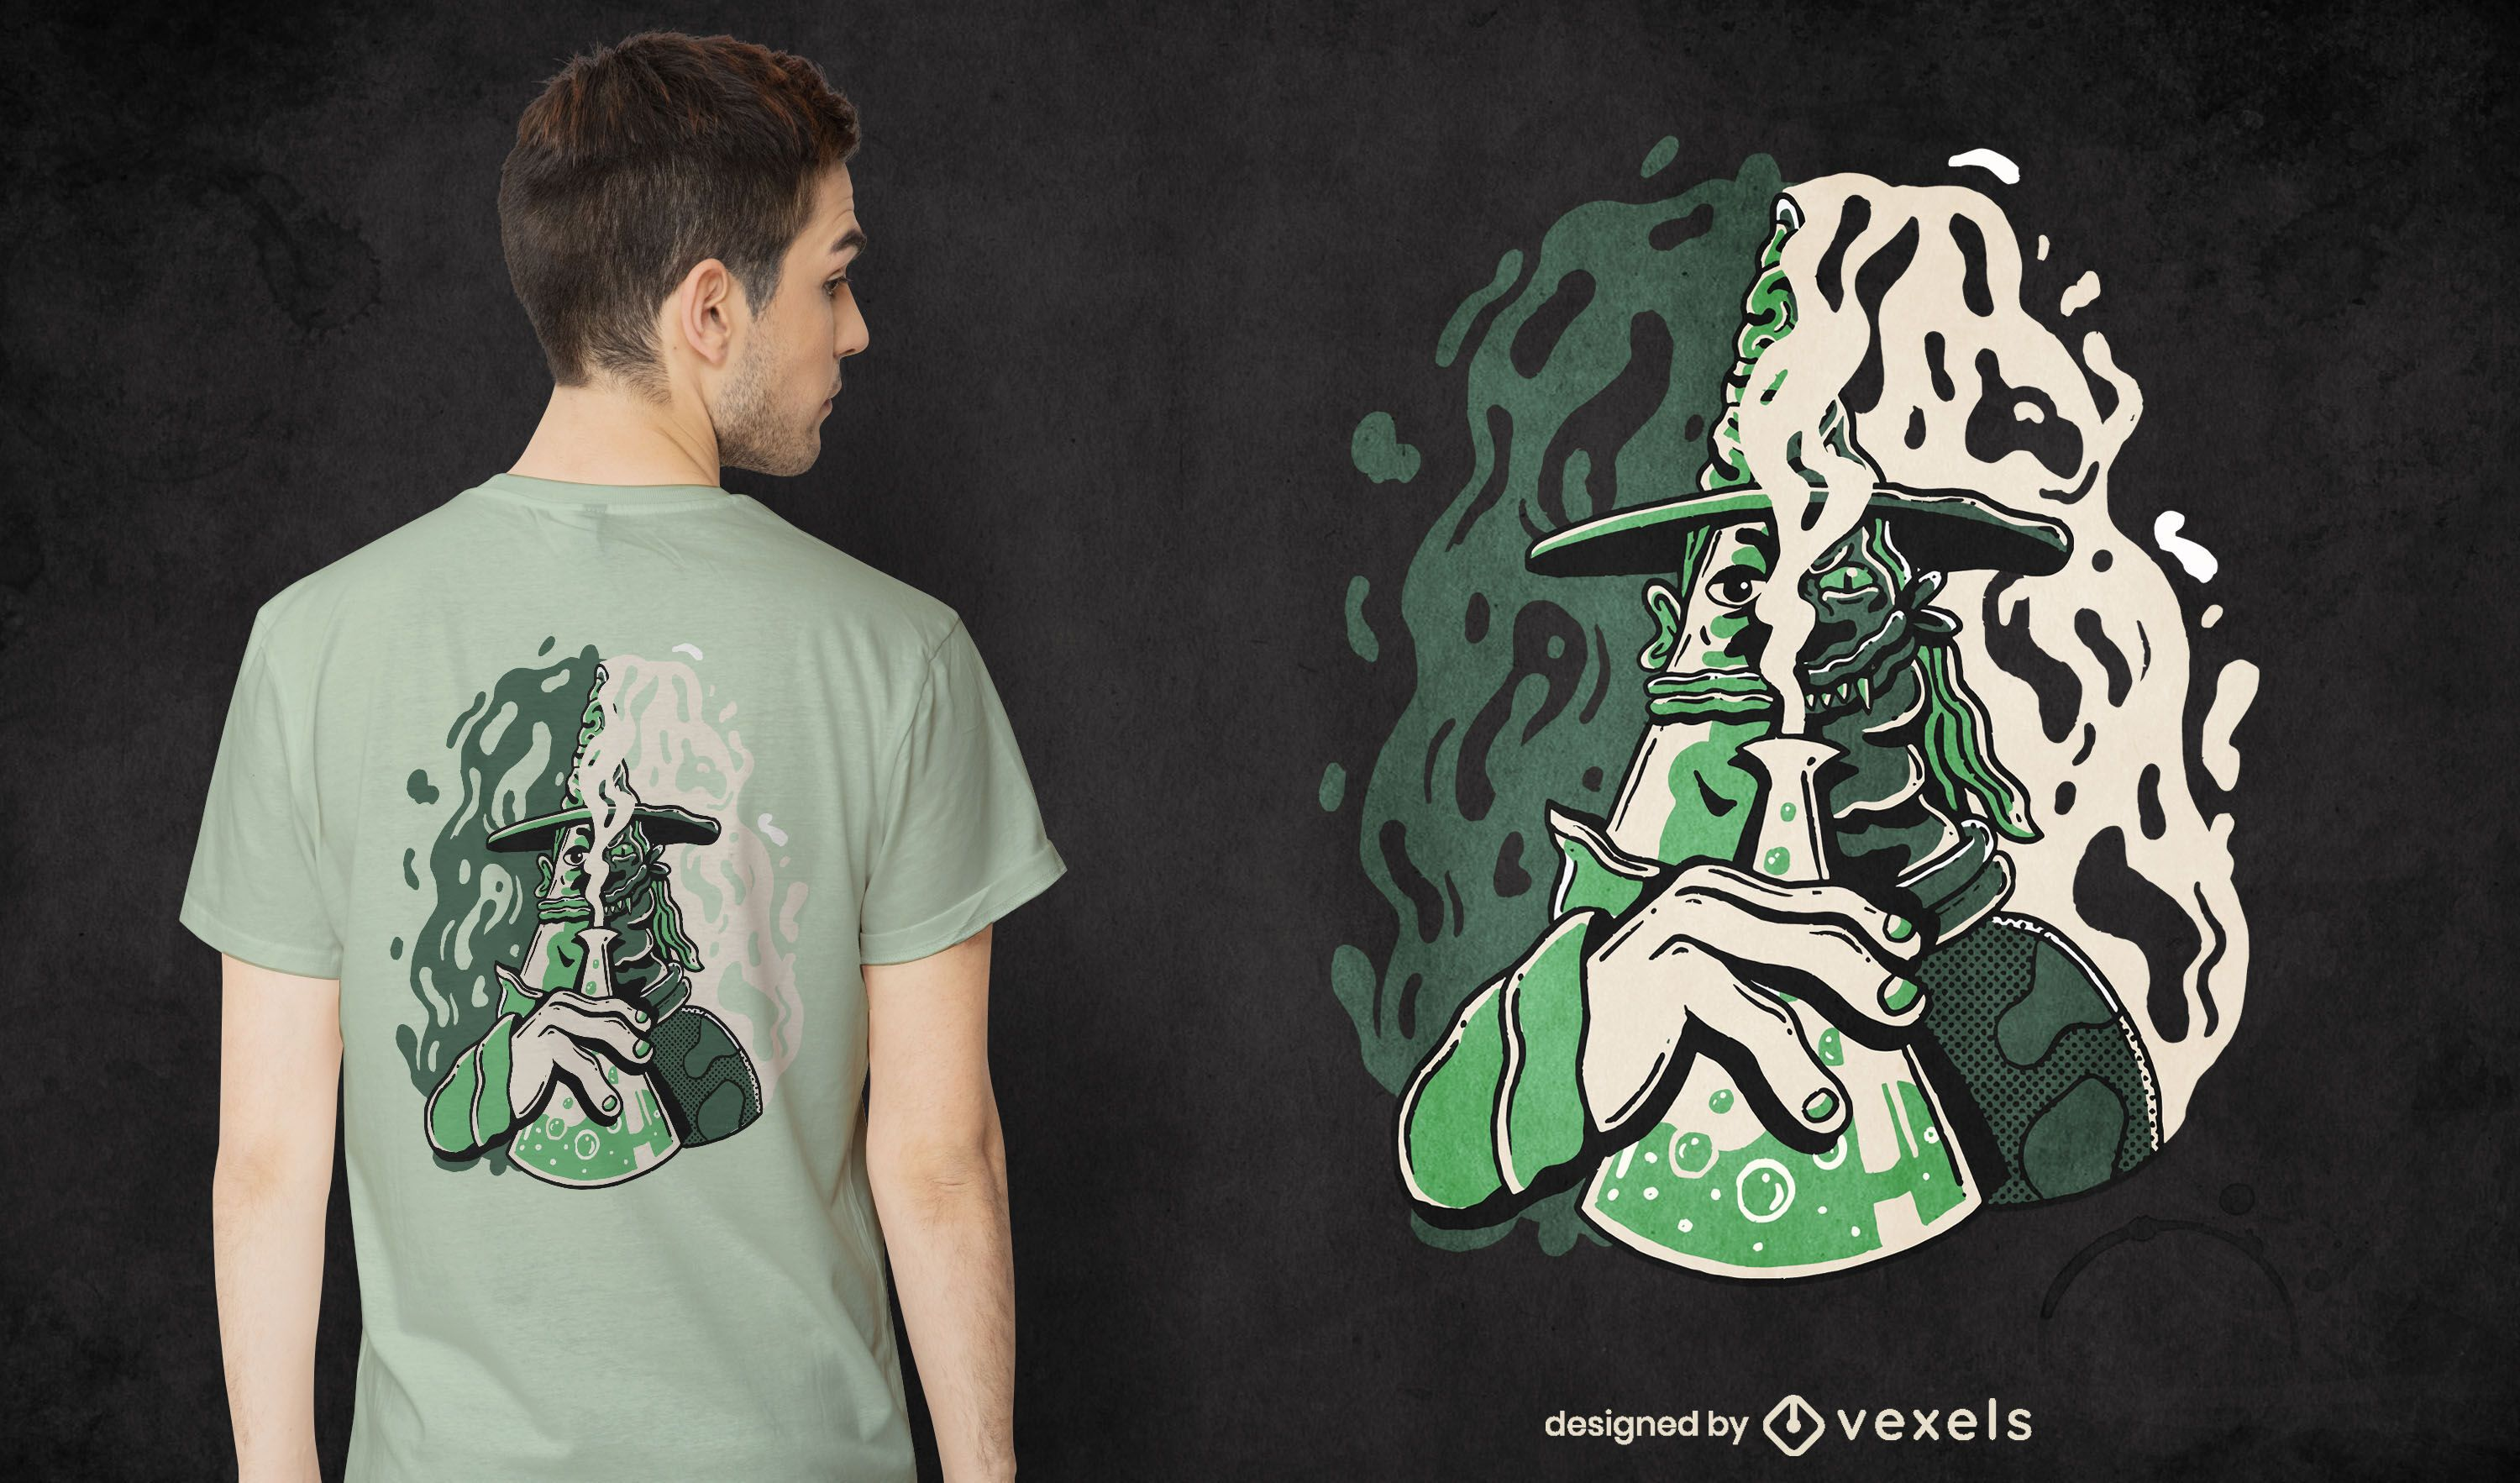 Evil wizard character potion t-shirt design